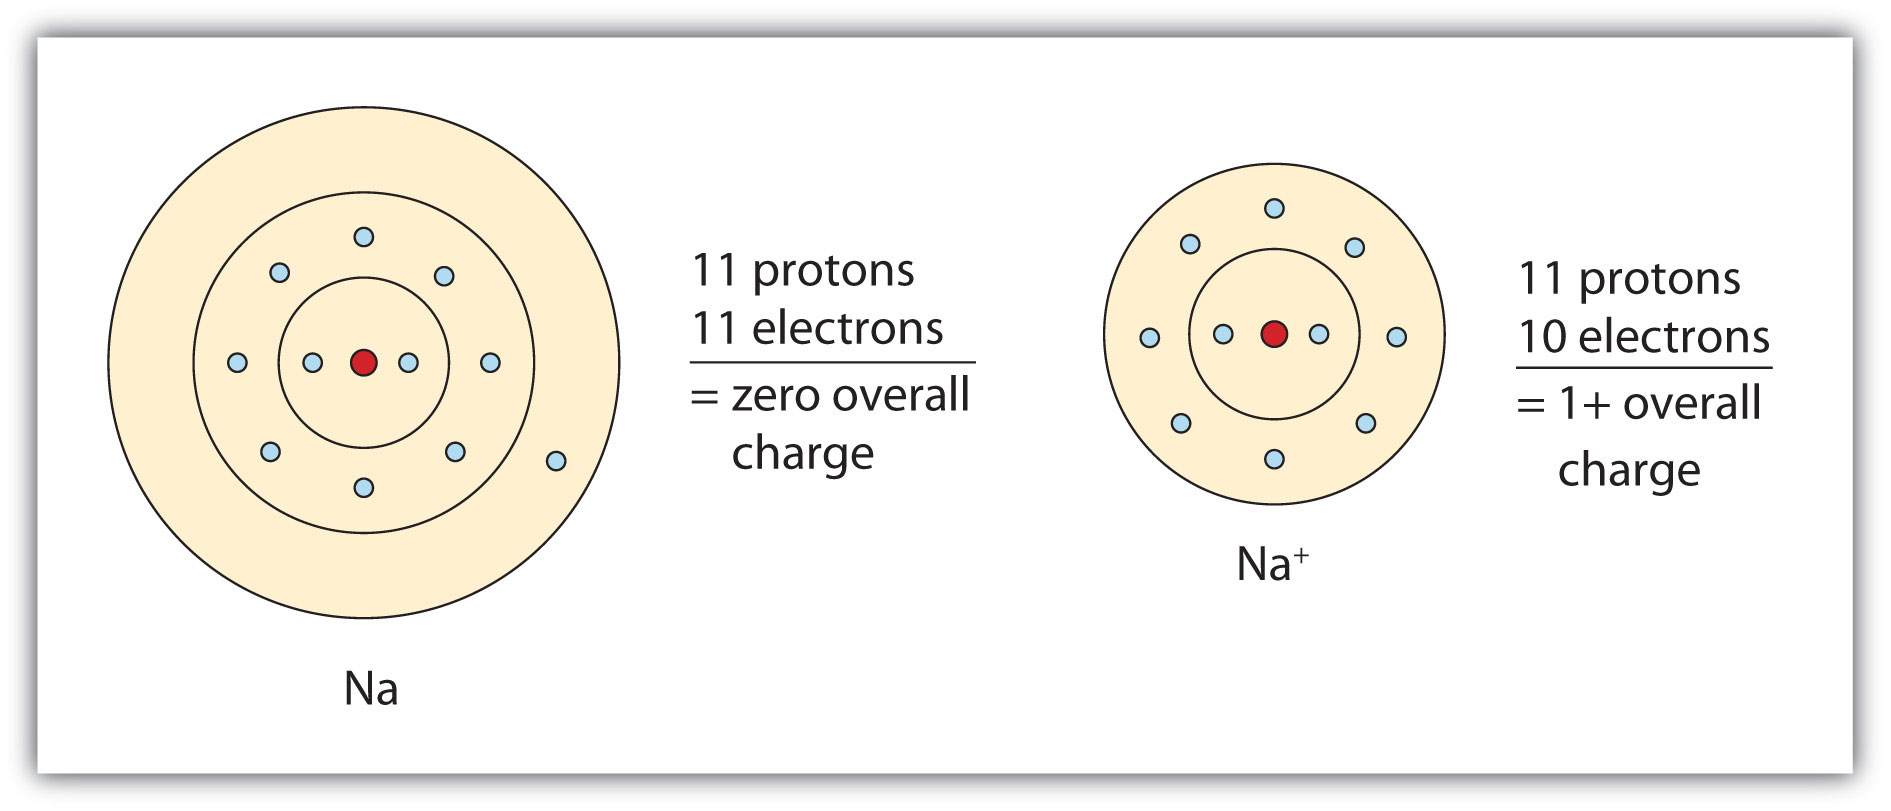 define atomic structure of atom and give the example